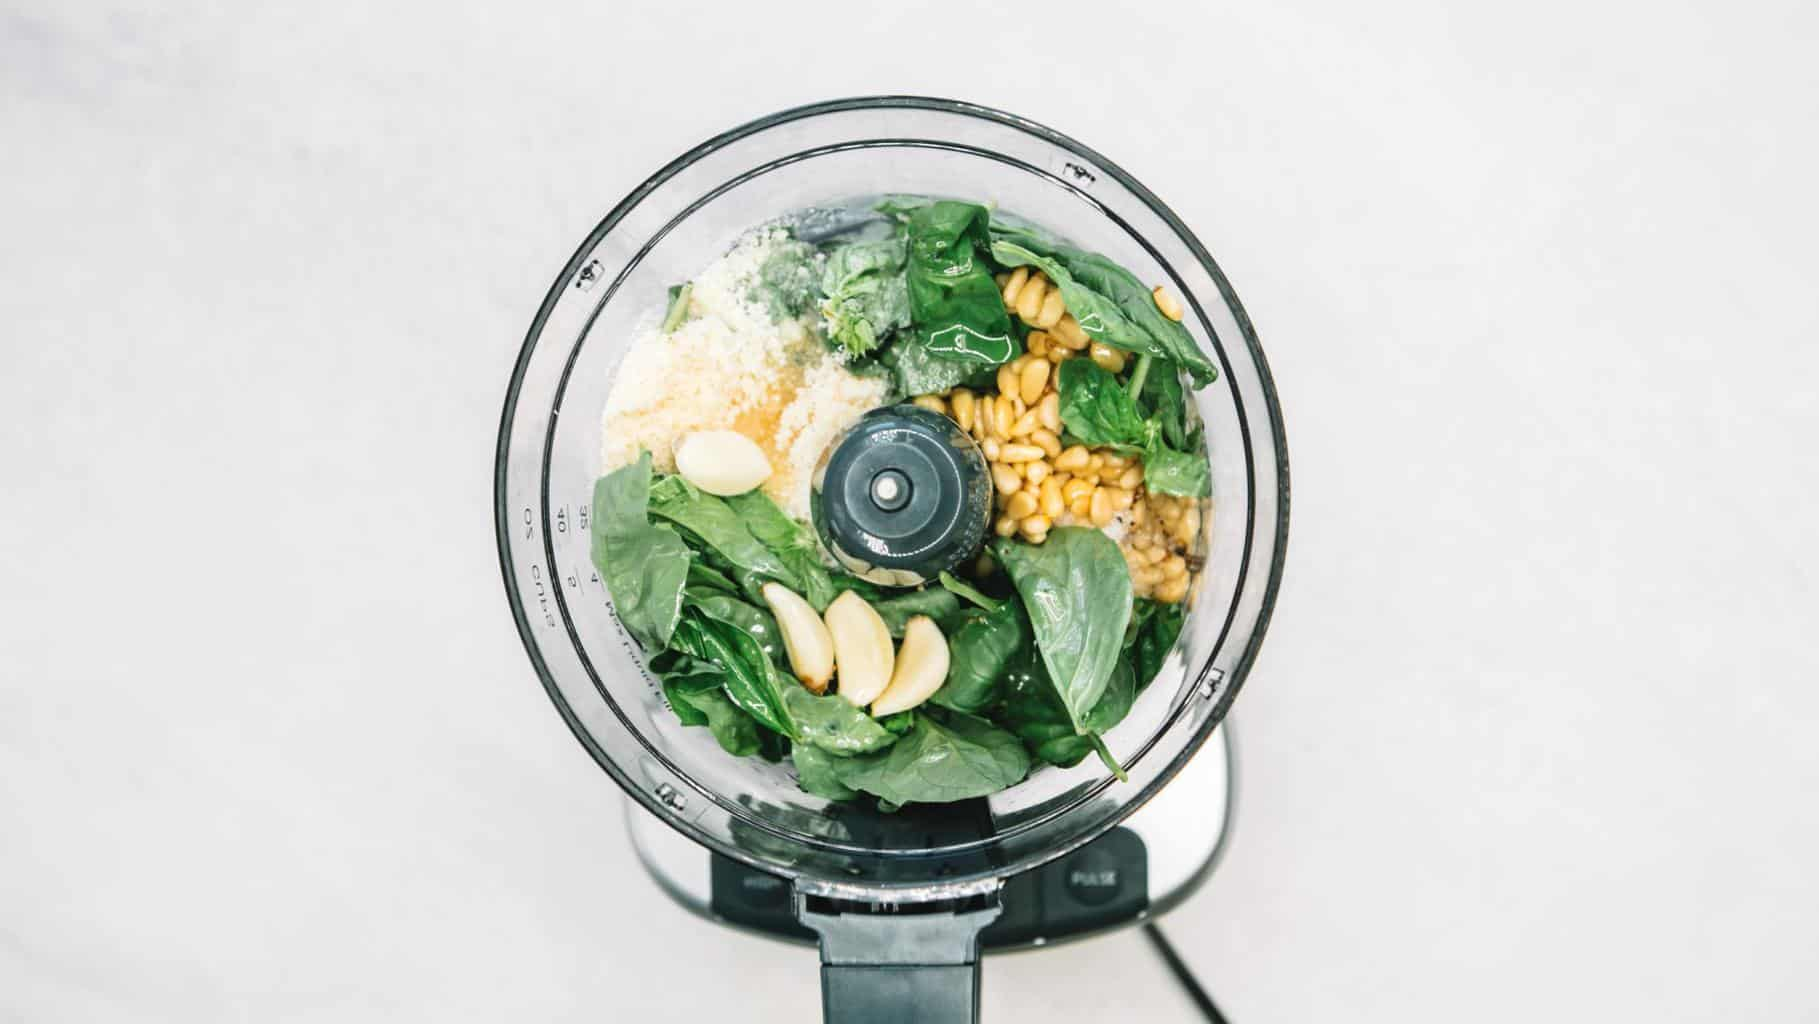 How to make Pesto ingredients in the bowl of a food processor